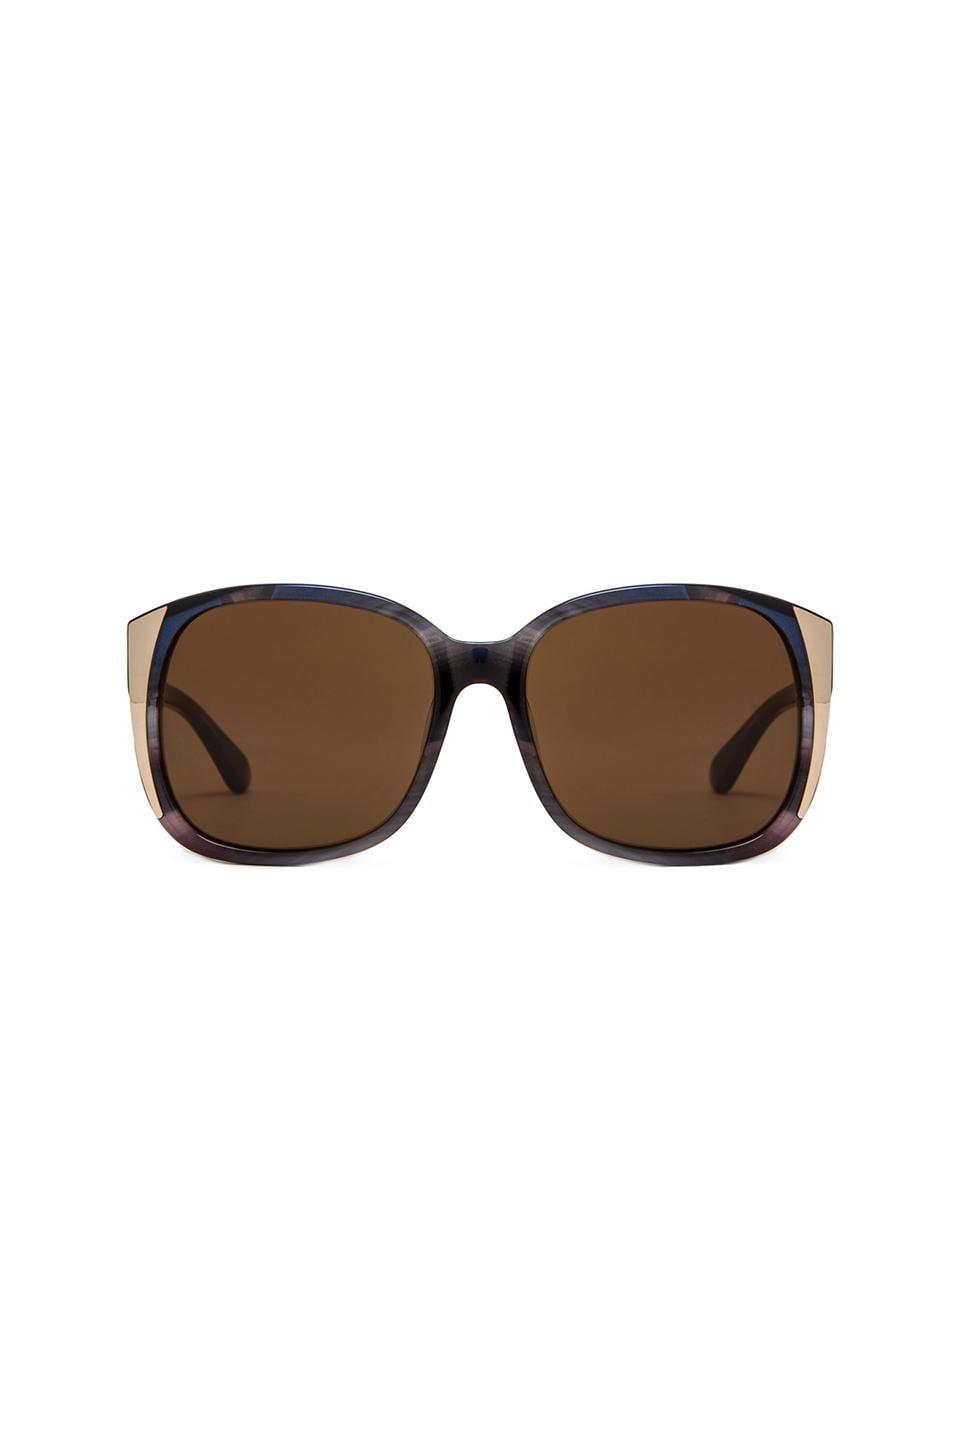 House of Harlow Julie Sunglasses in Iridescent Black